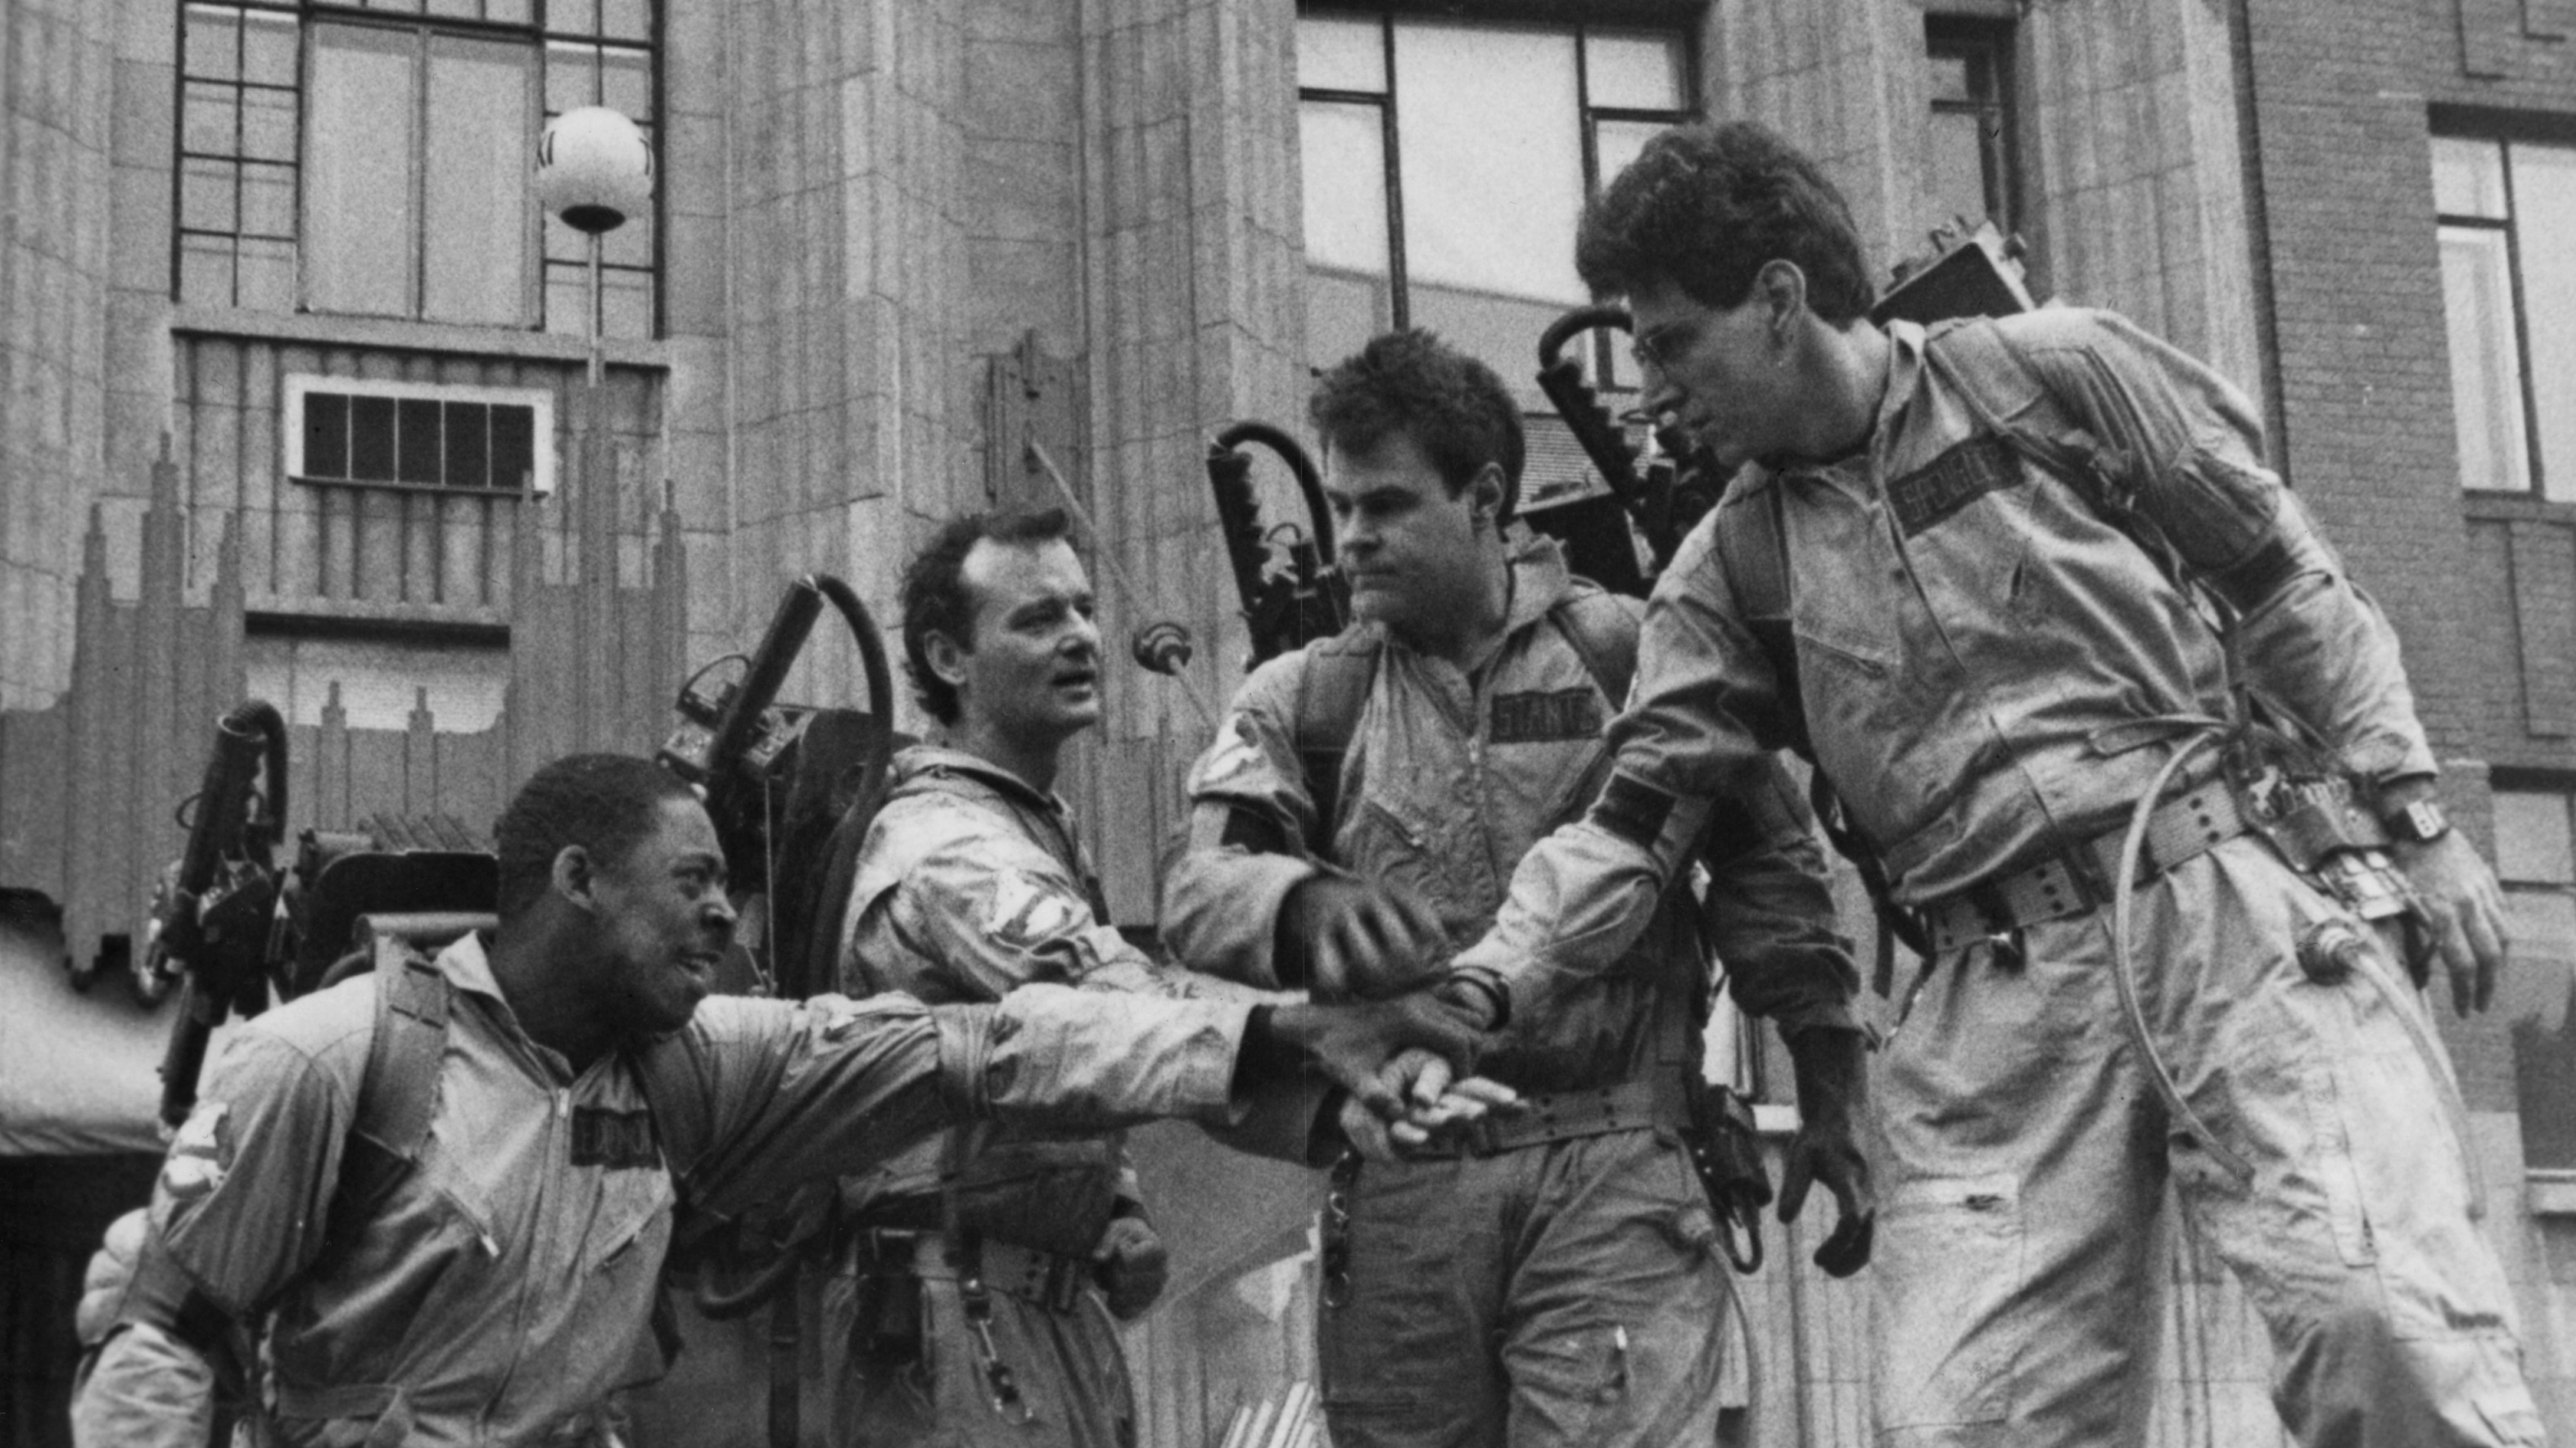 Ghostbusters 1984 Cast Where Are The Original Actors Now